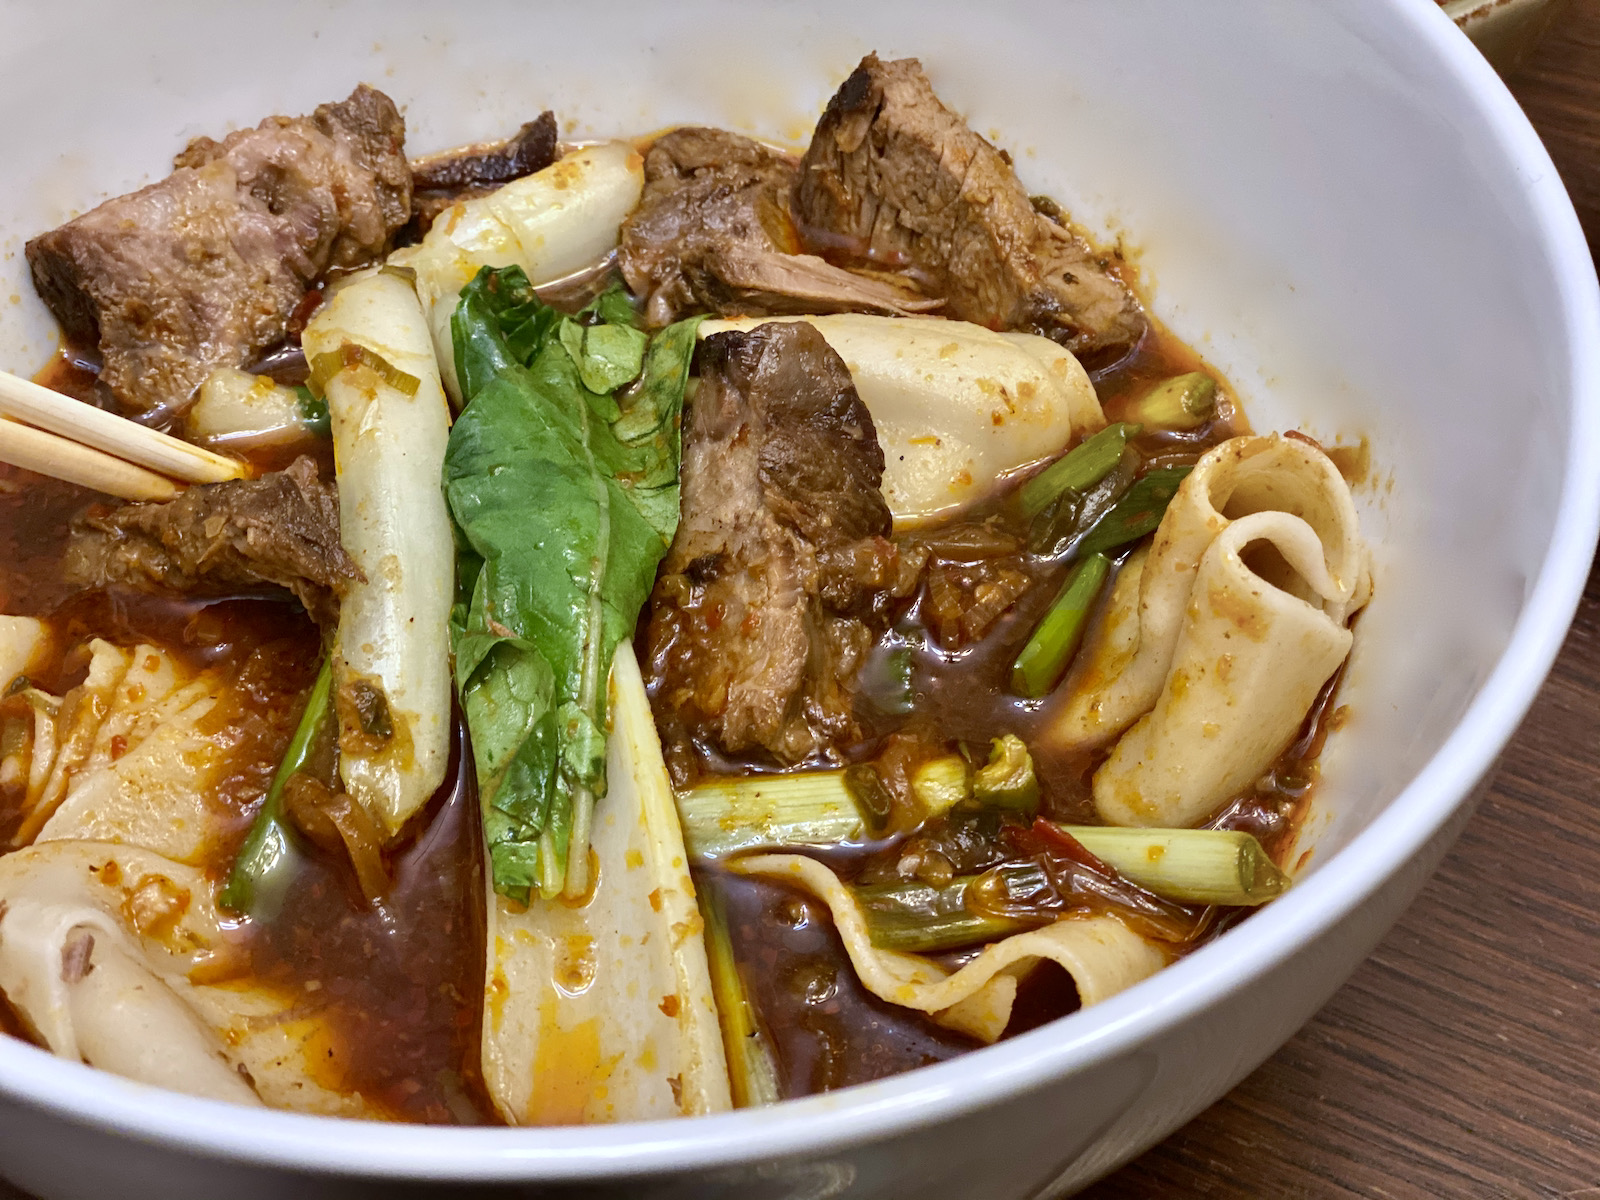 Taiwanese beef noodles from Dandan